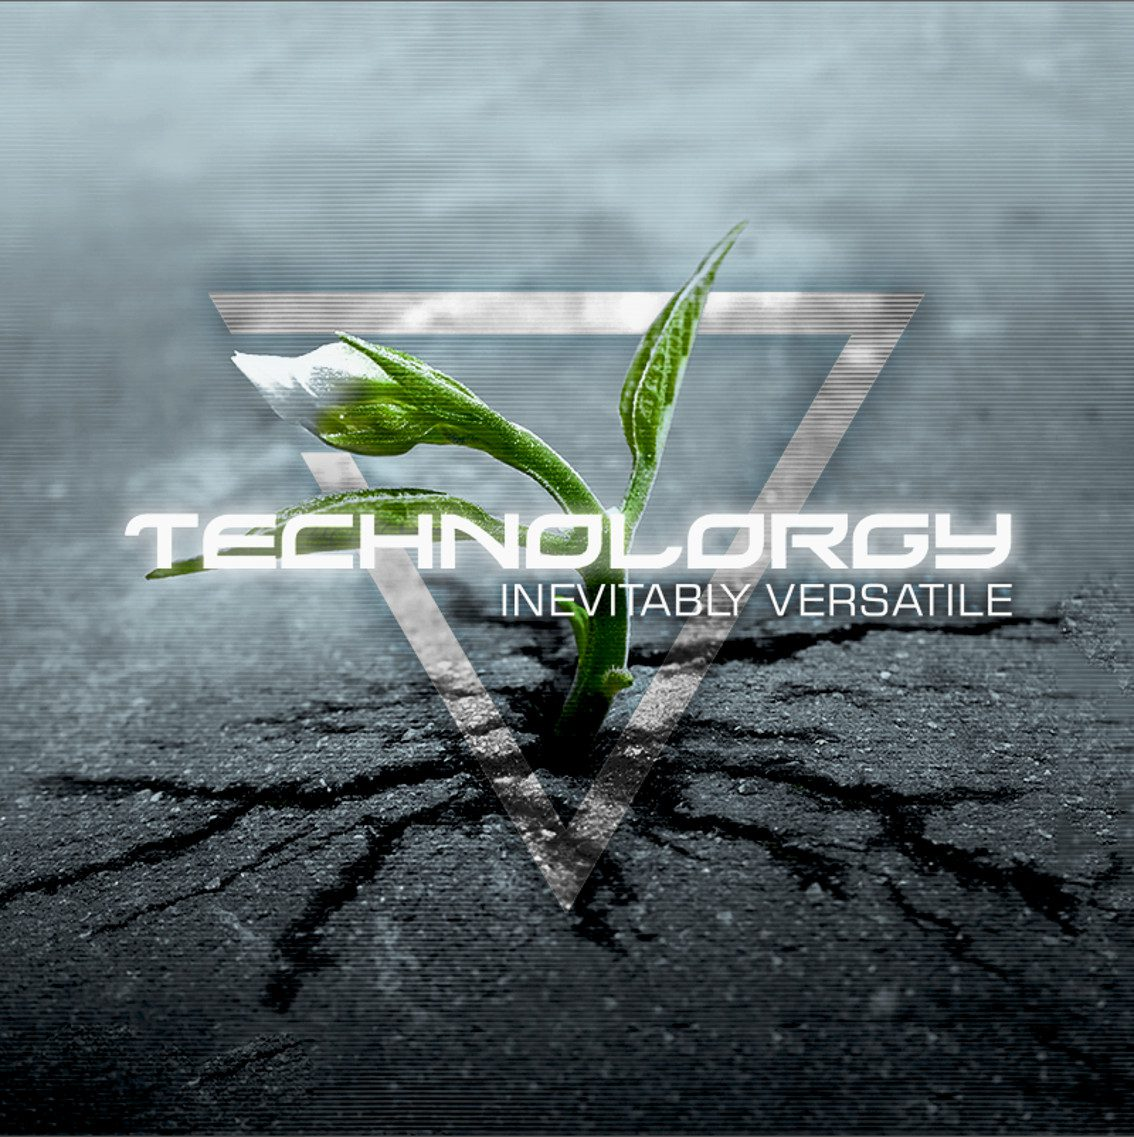 Technolorgy hits back with 'Inevitably Versatile' 2CD set (the first 200 copies that is)